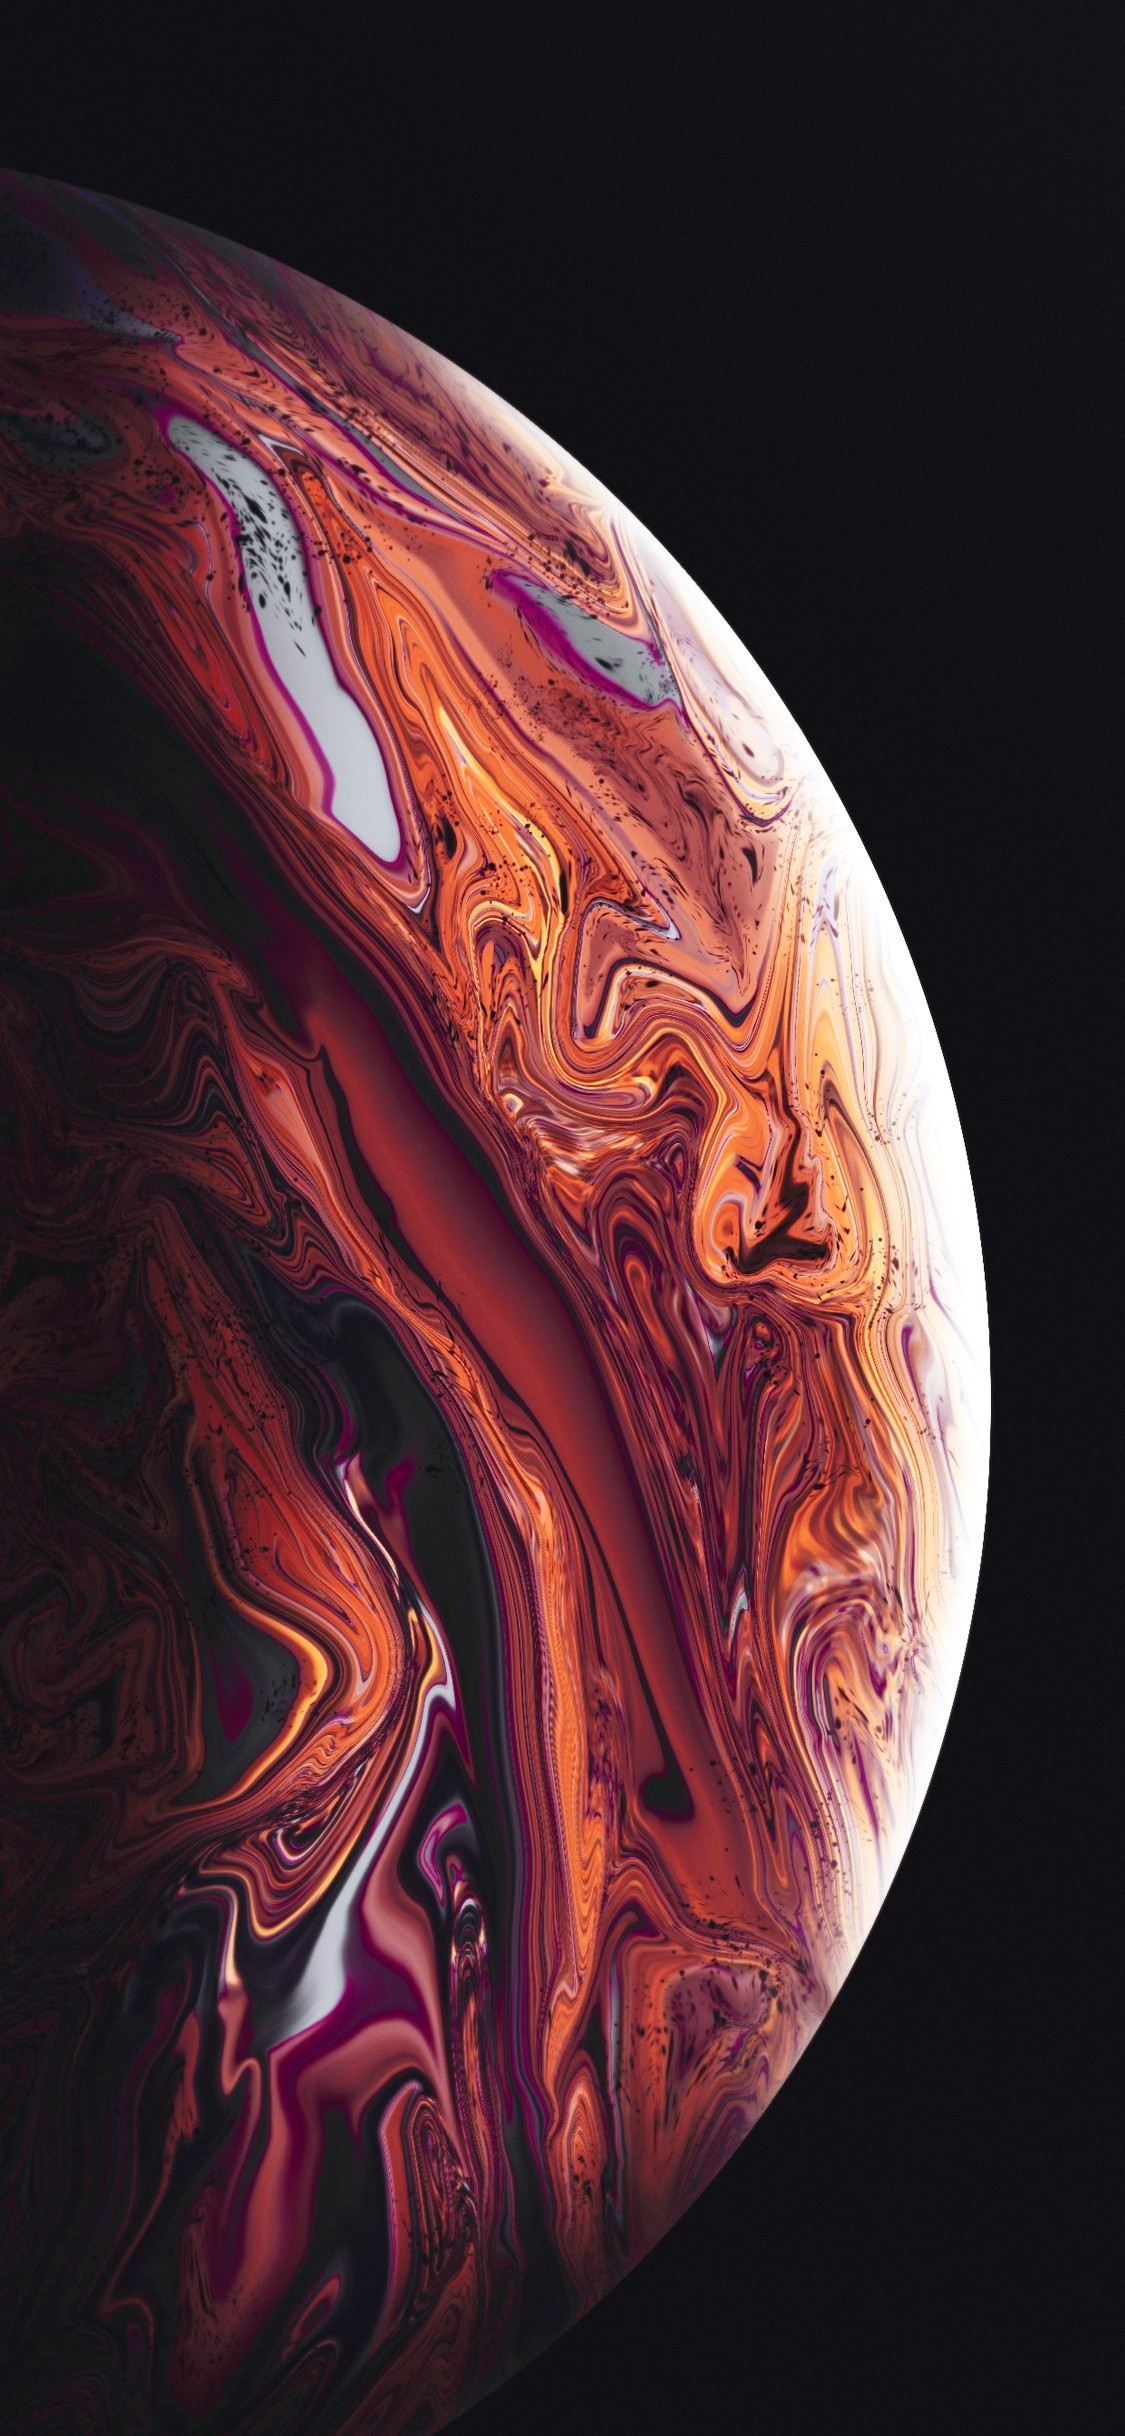 iPhone XS Wallpaper HD With high-resolution 1125X2436 pixel. You can use this wallpaper for your iPhone 5, 6, 7, 8, X, XS, XR backgrounds, Mobile Screensaver, or iPad Lock Screen